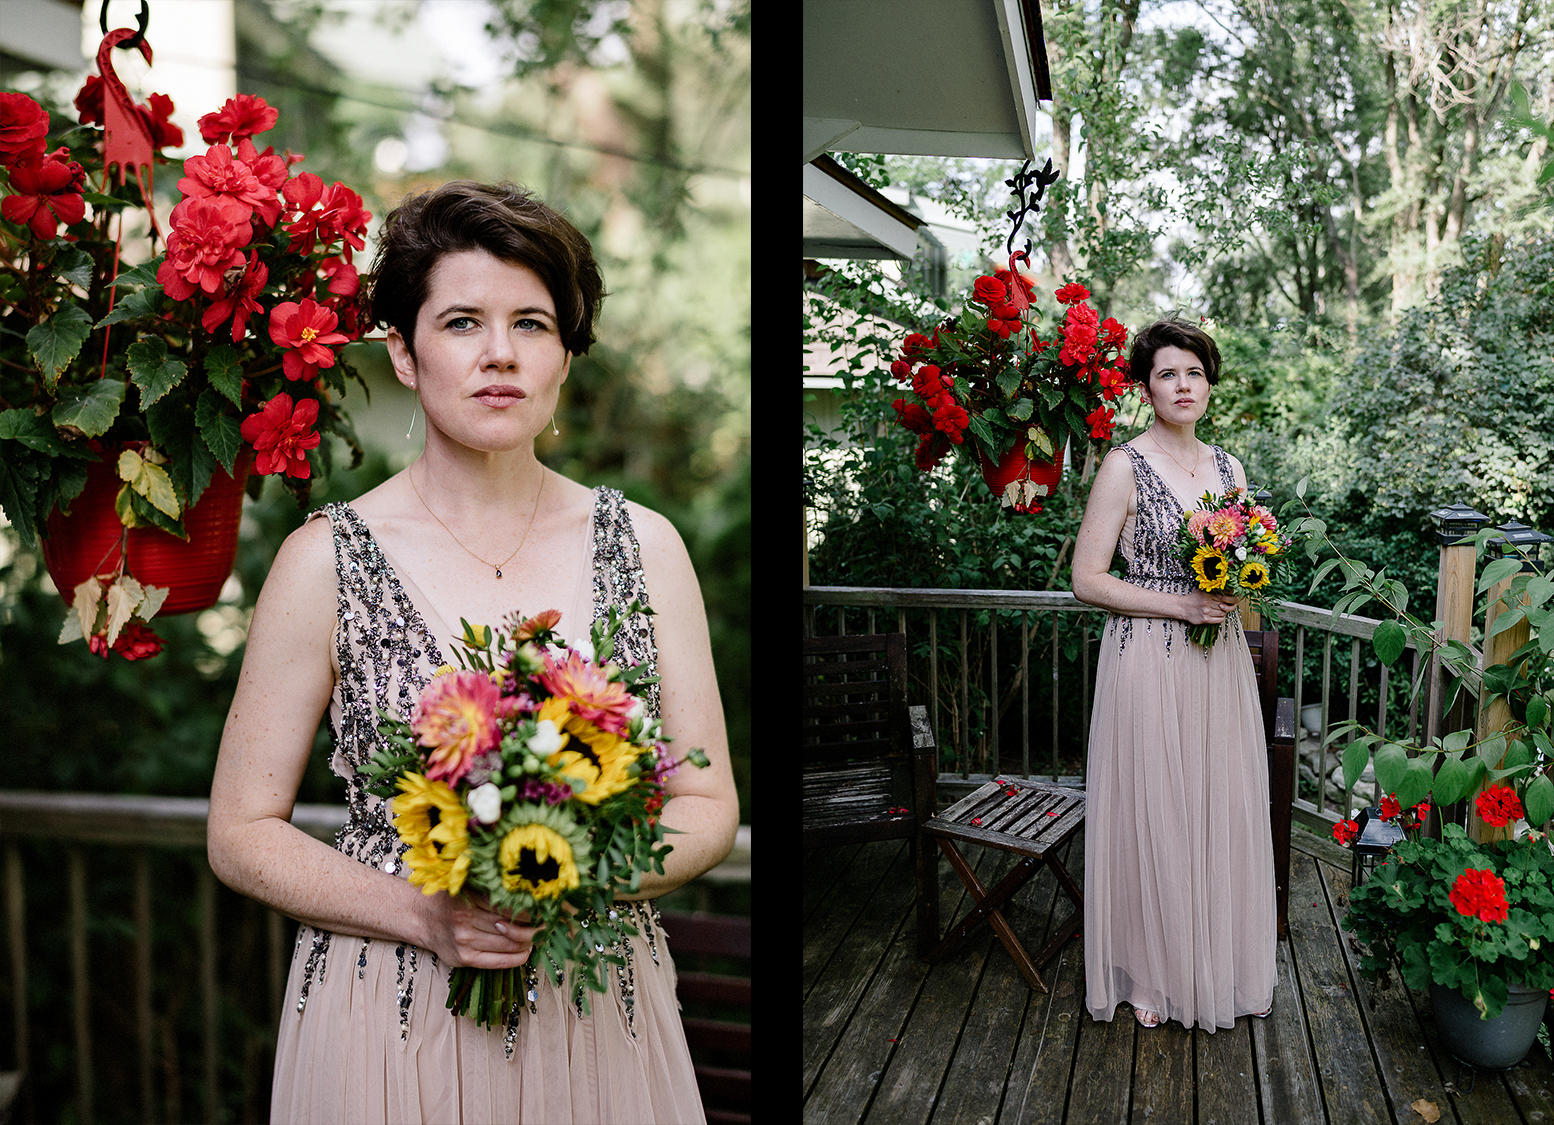 Best-Wedding-Photographers-Toronto-with-documentary-style-photojournalistic-wedding-photographer-editorial-cool-hip-timeless-Intimate-Vintage-Toronto-Island-Cafe-Clubhouse-Wedding-Venue-Detail-Getting-ready-bride-portraits-RED.jpg